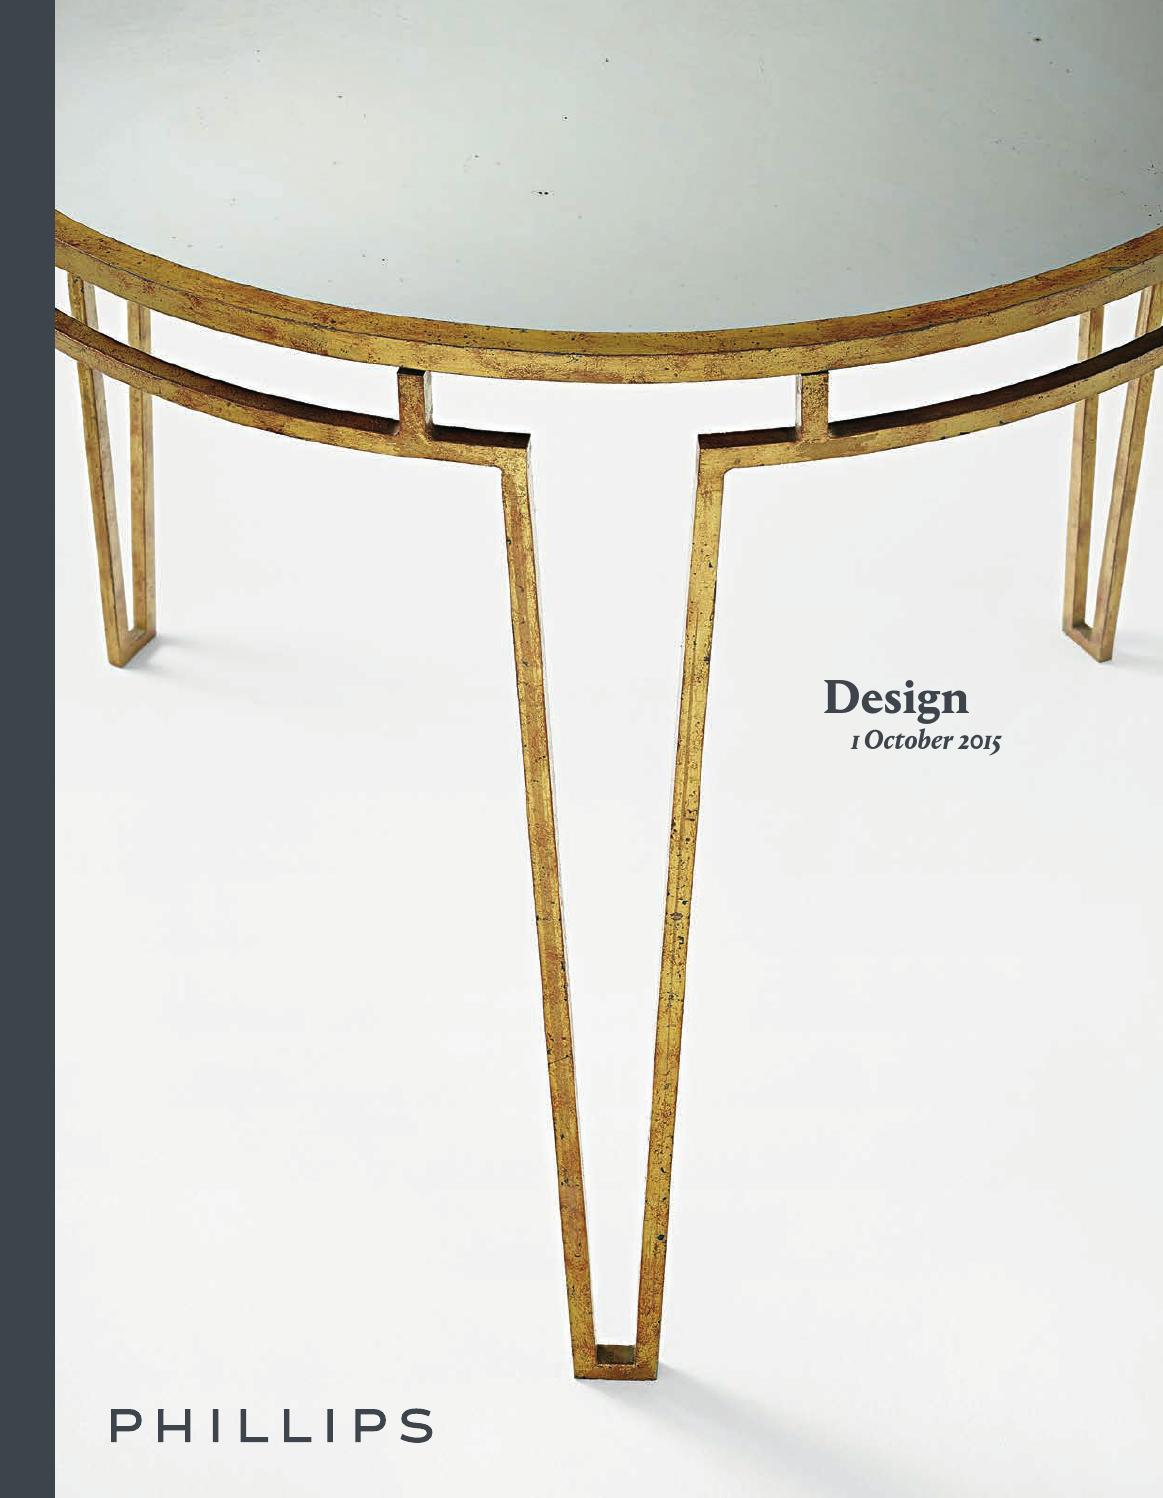 DESIGN [Catalogue] by PHILLIPS - issuu